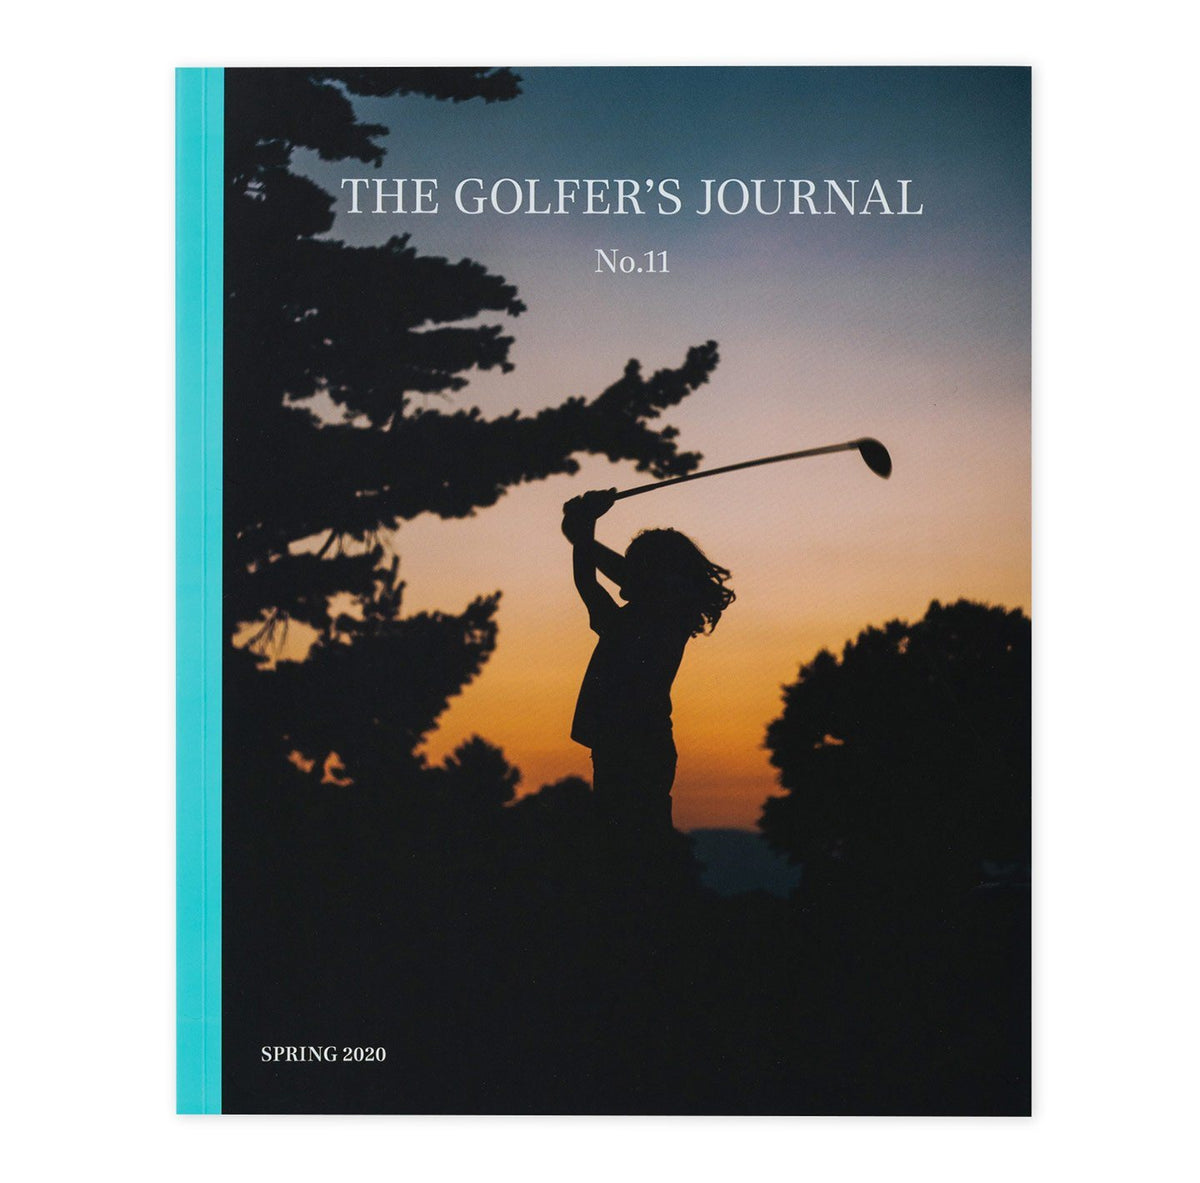 The Golfer's Journal #11